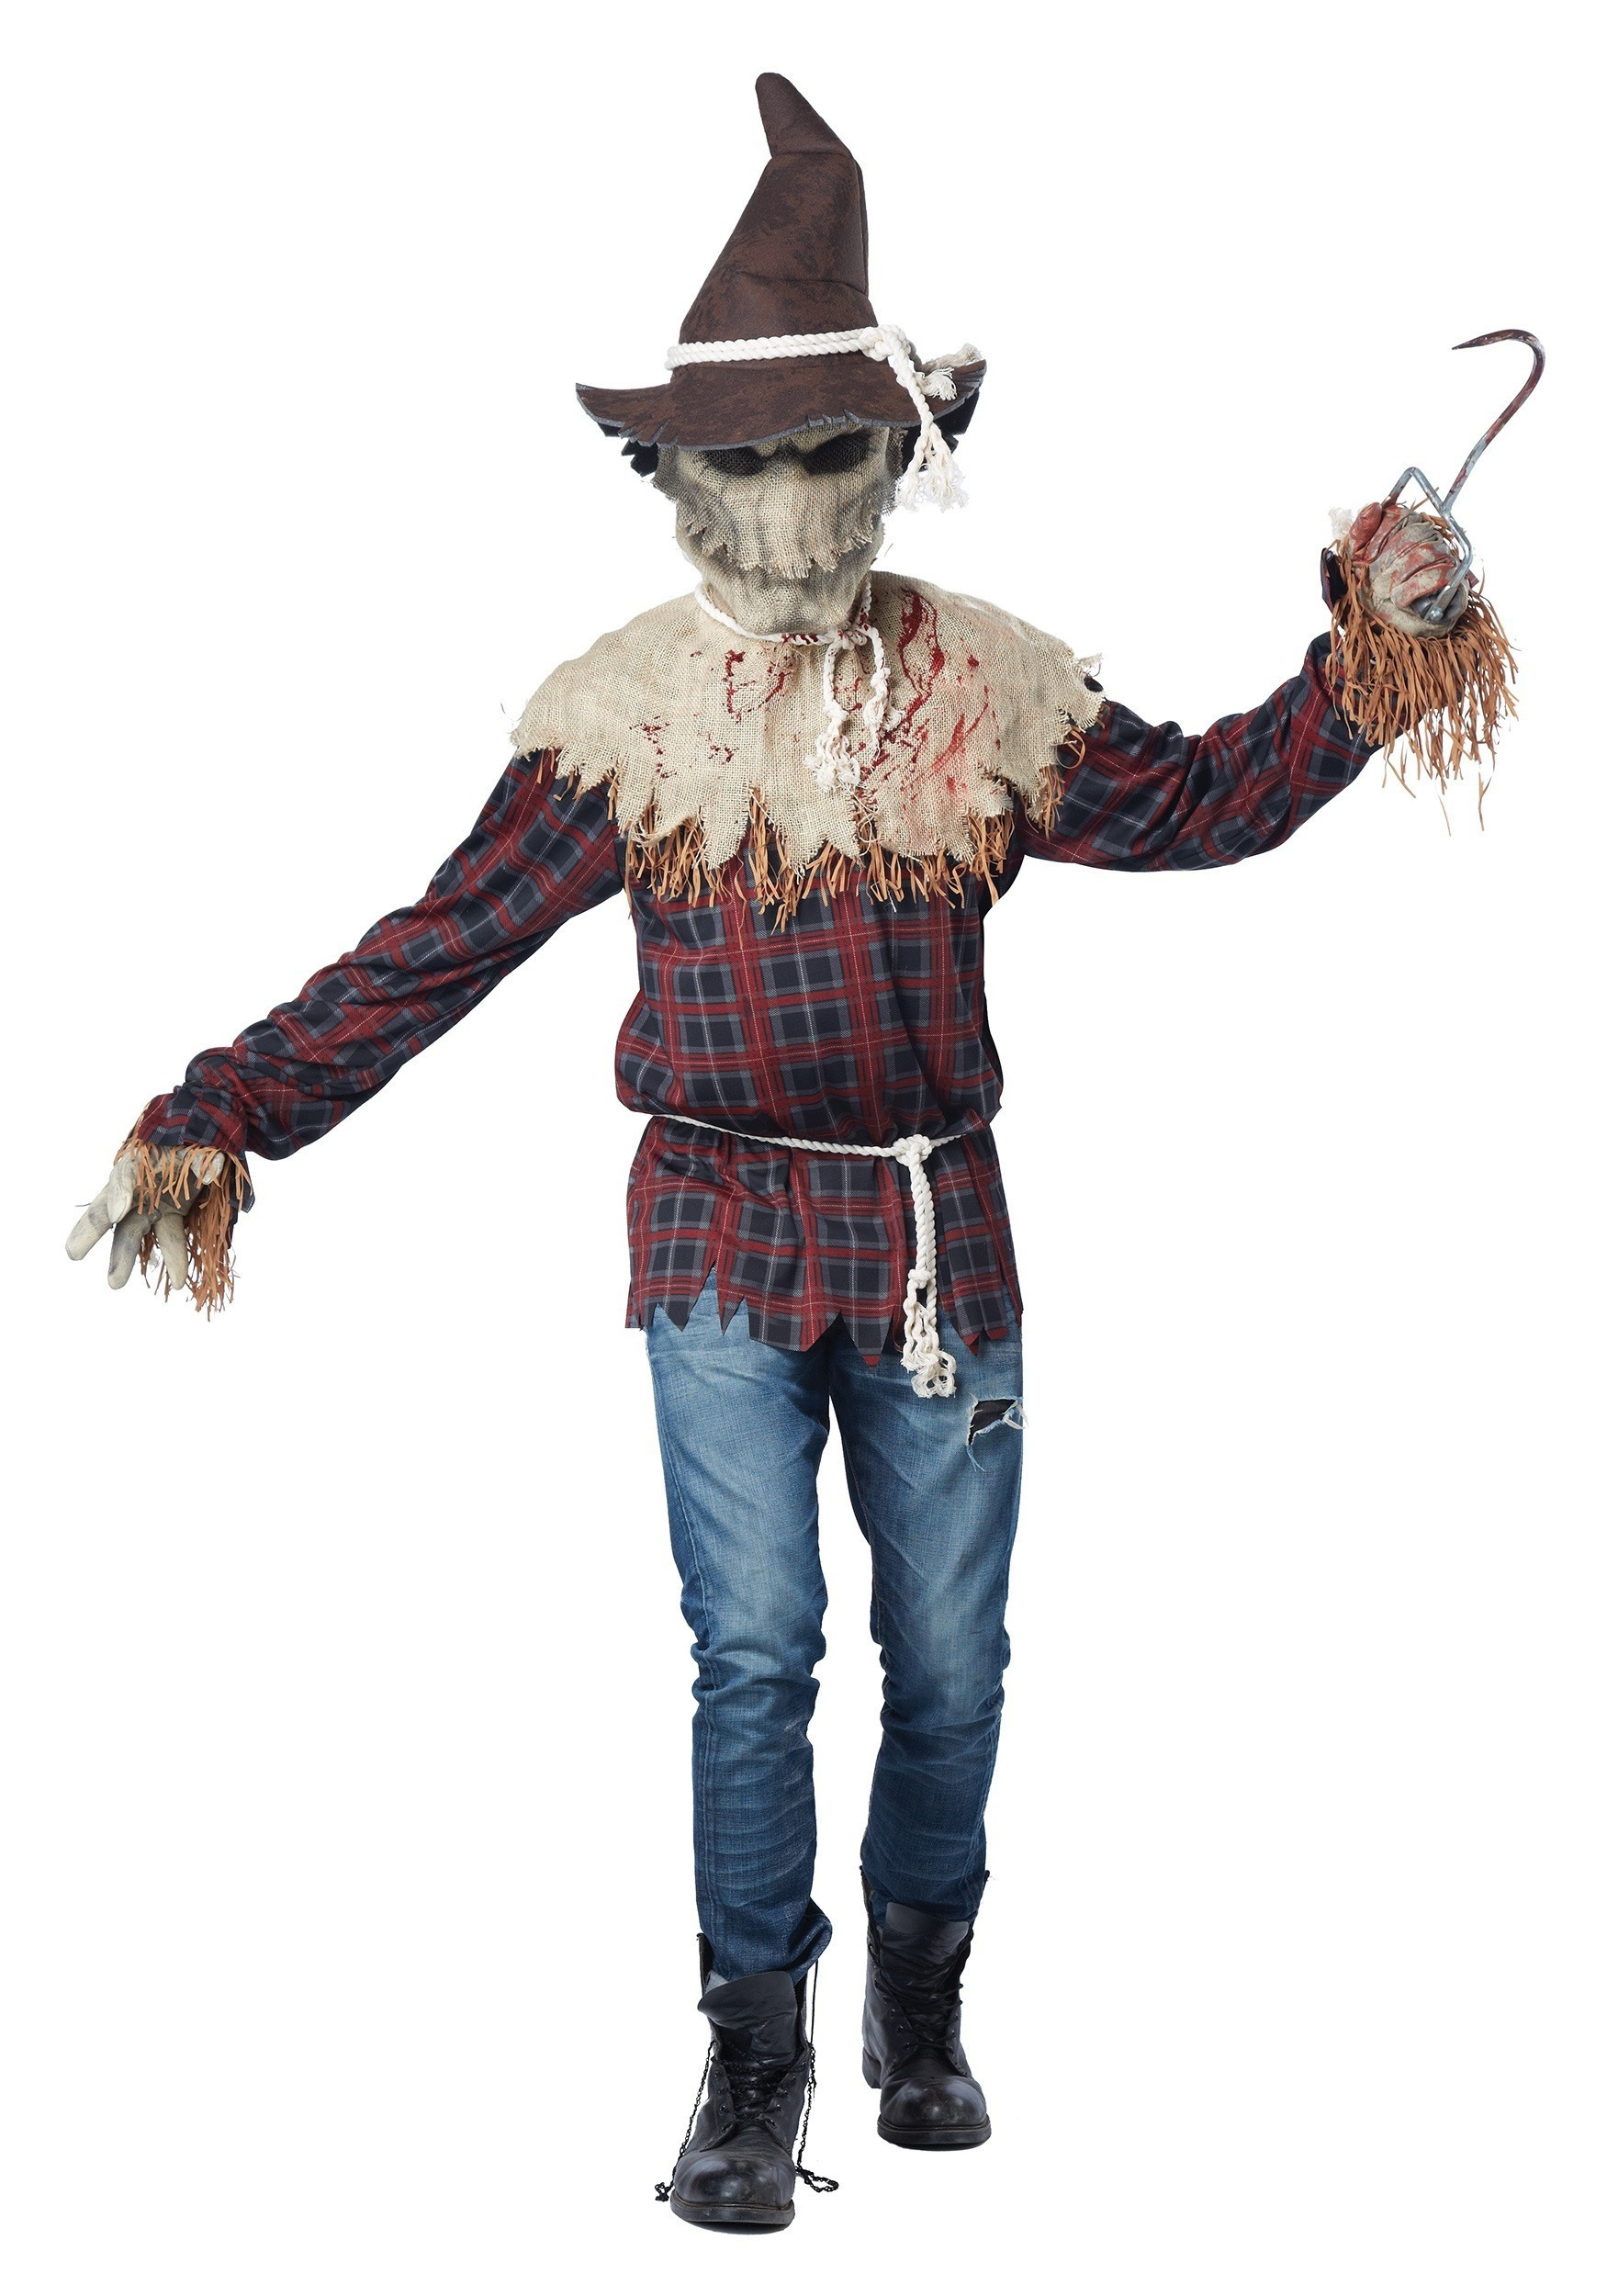 Scarecrow Images